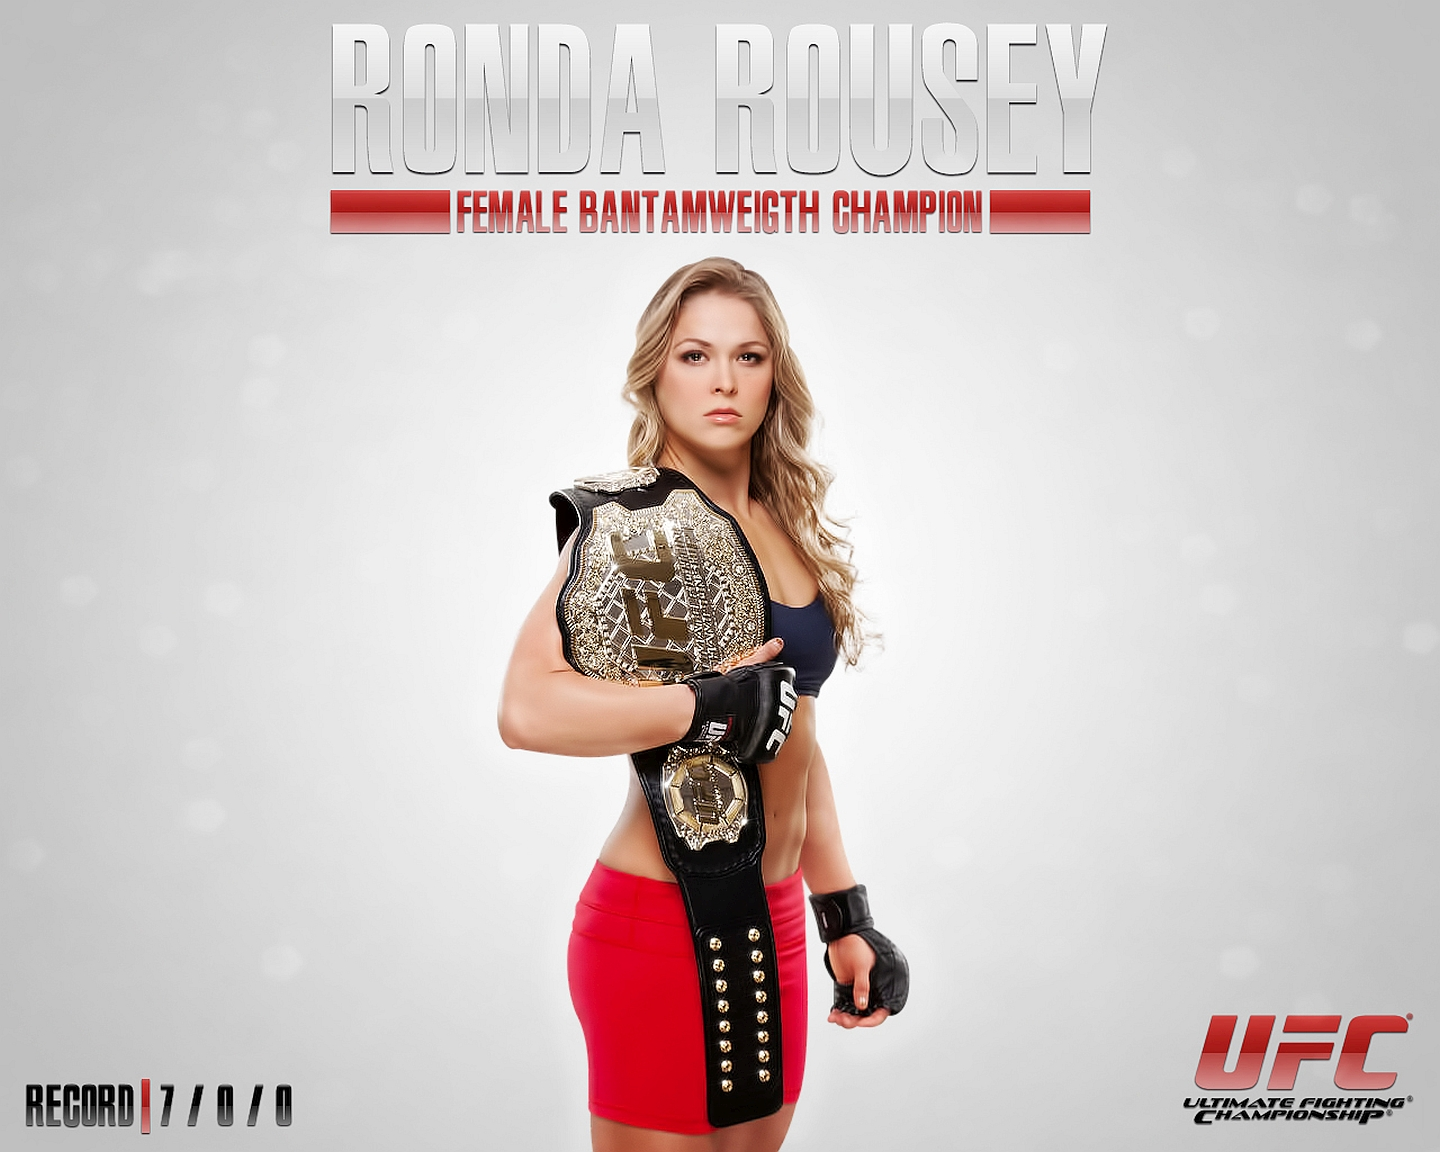 Ronda rousey wallpaper and background image 1440x1152 - Ronda rousey wallpaper ...